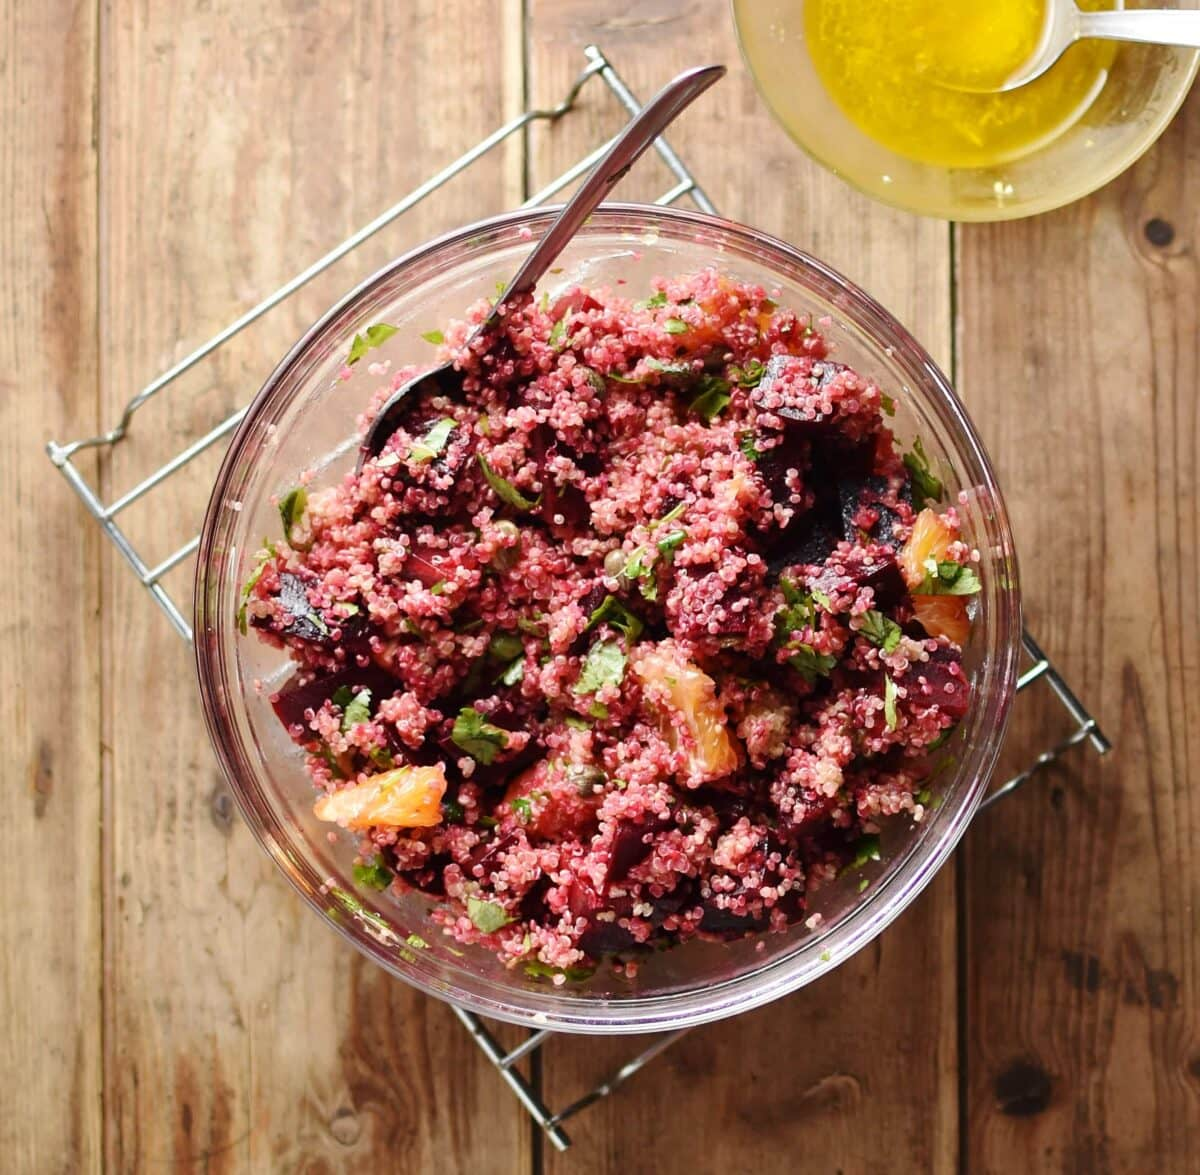 Top down view of quinoa beetroot salad with spoon inside large bowl, with dressing in small dish in top left corner.